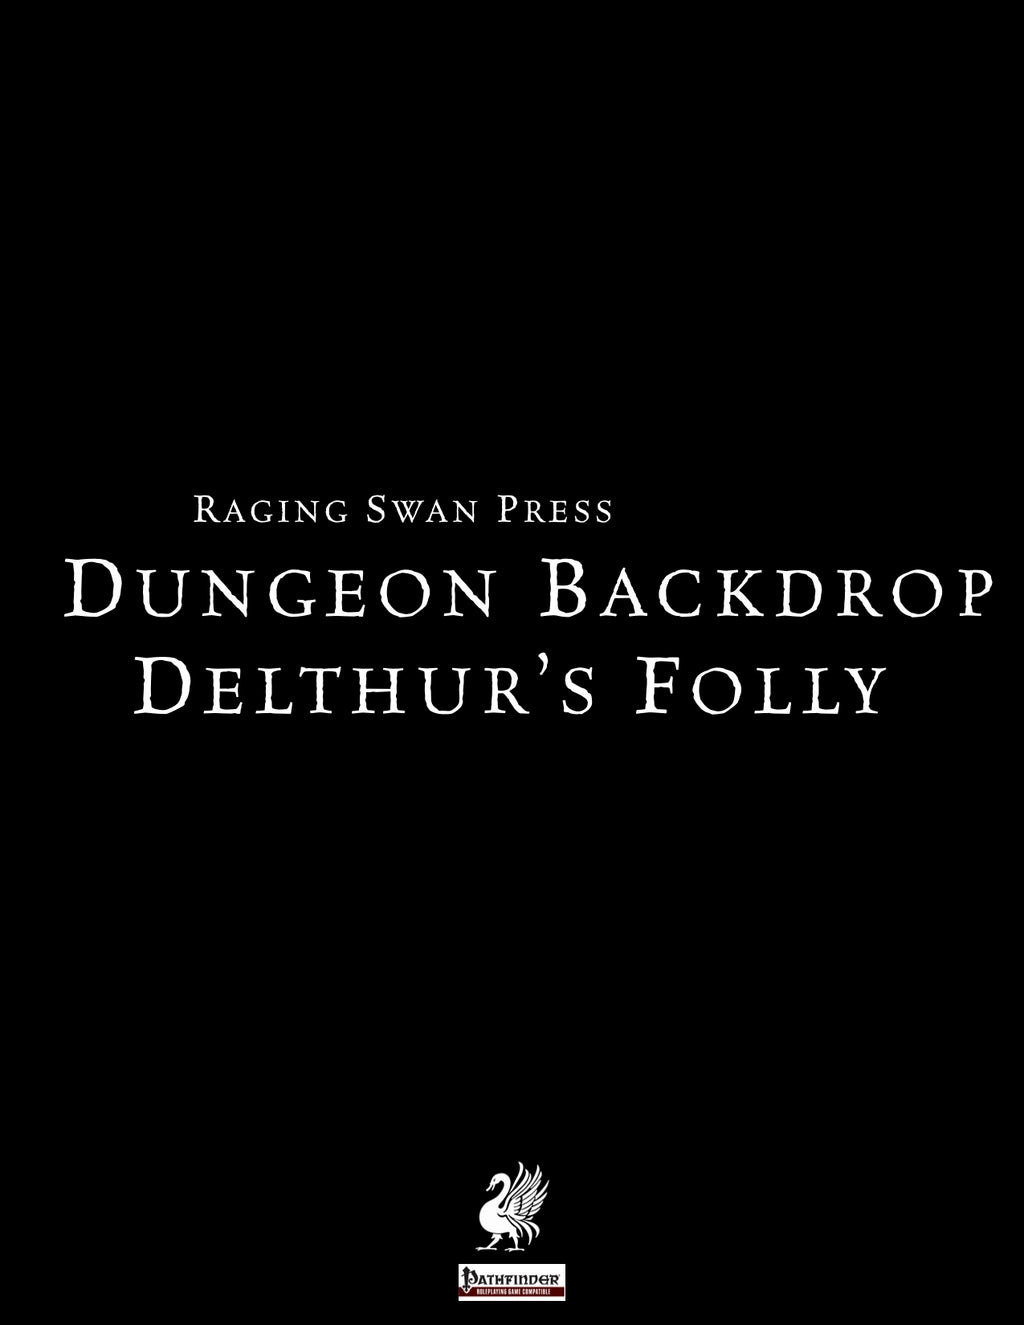 Dungeon Backdrop: Delthur's Folly